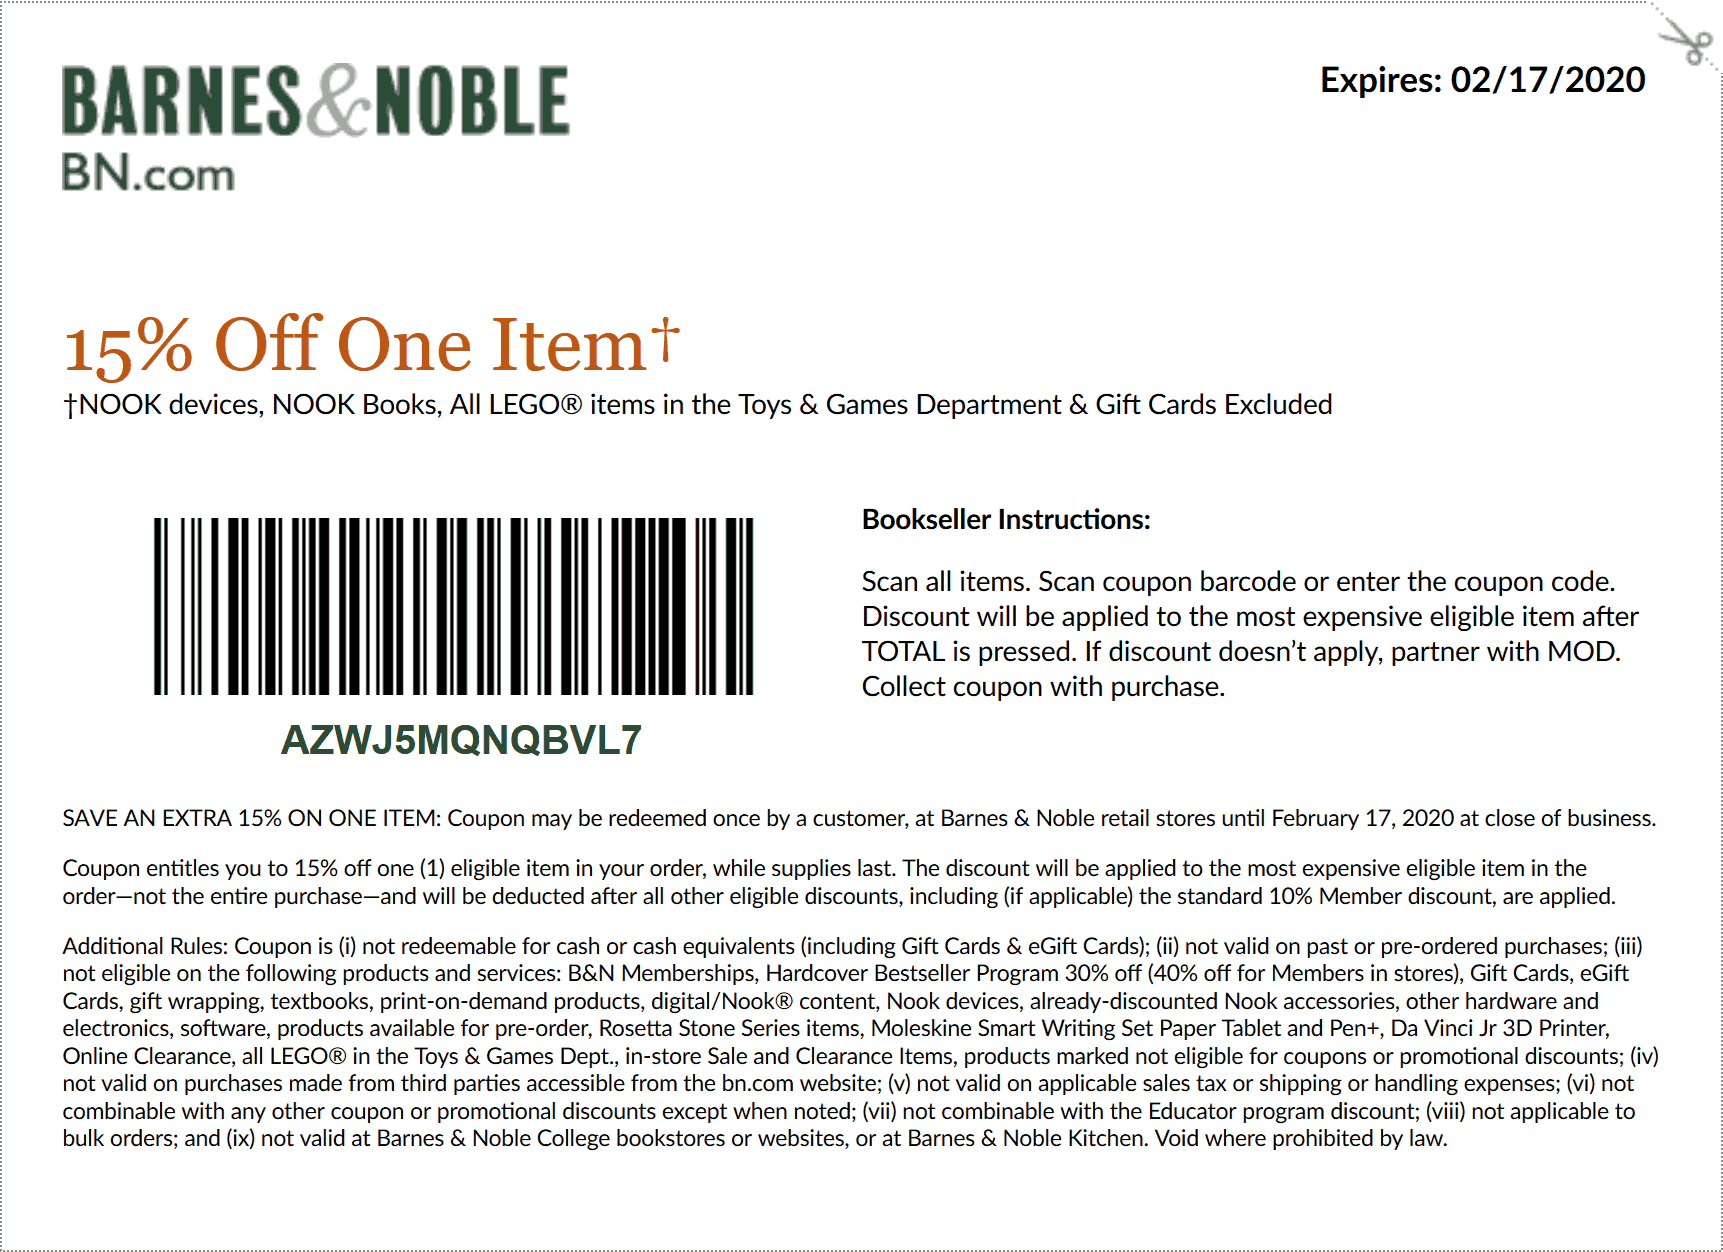 Barnes & Noble coupons & promo code for [July 2020]